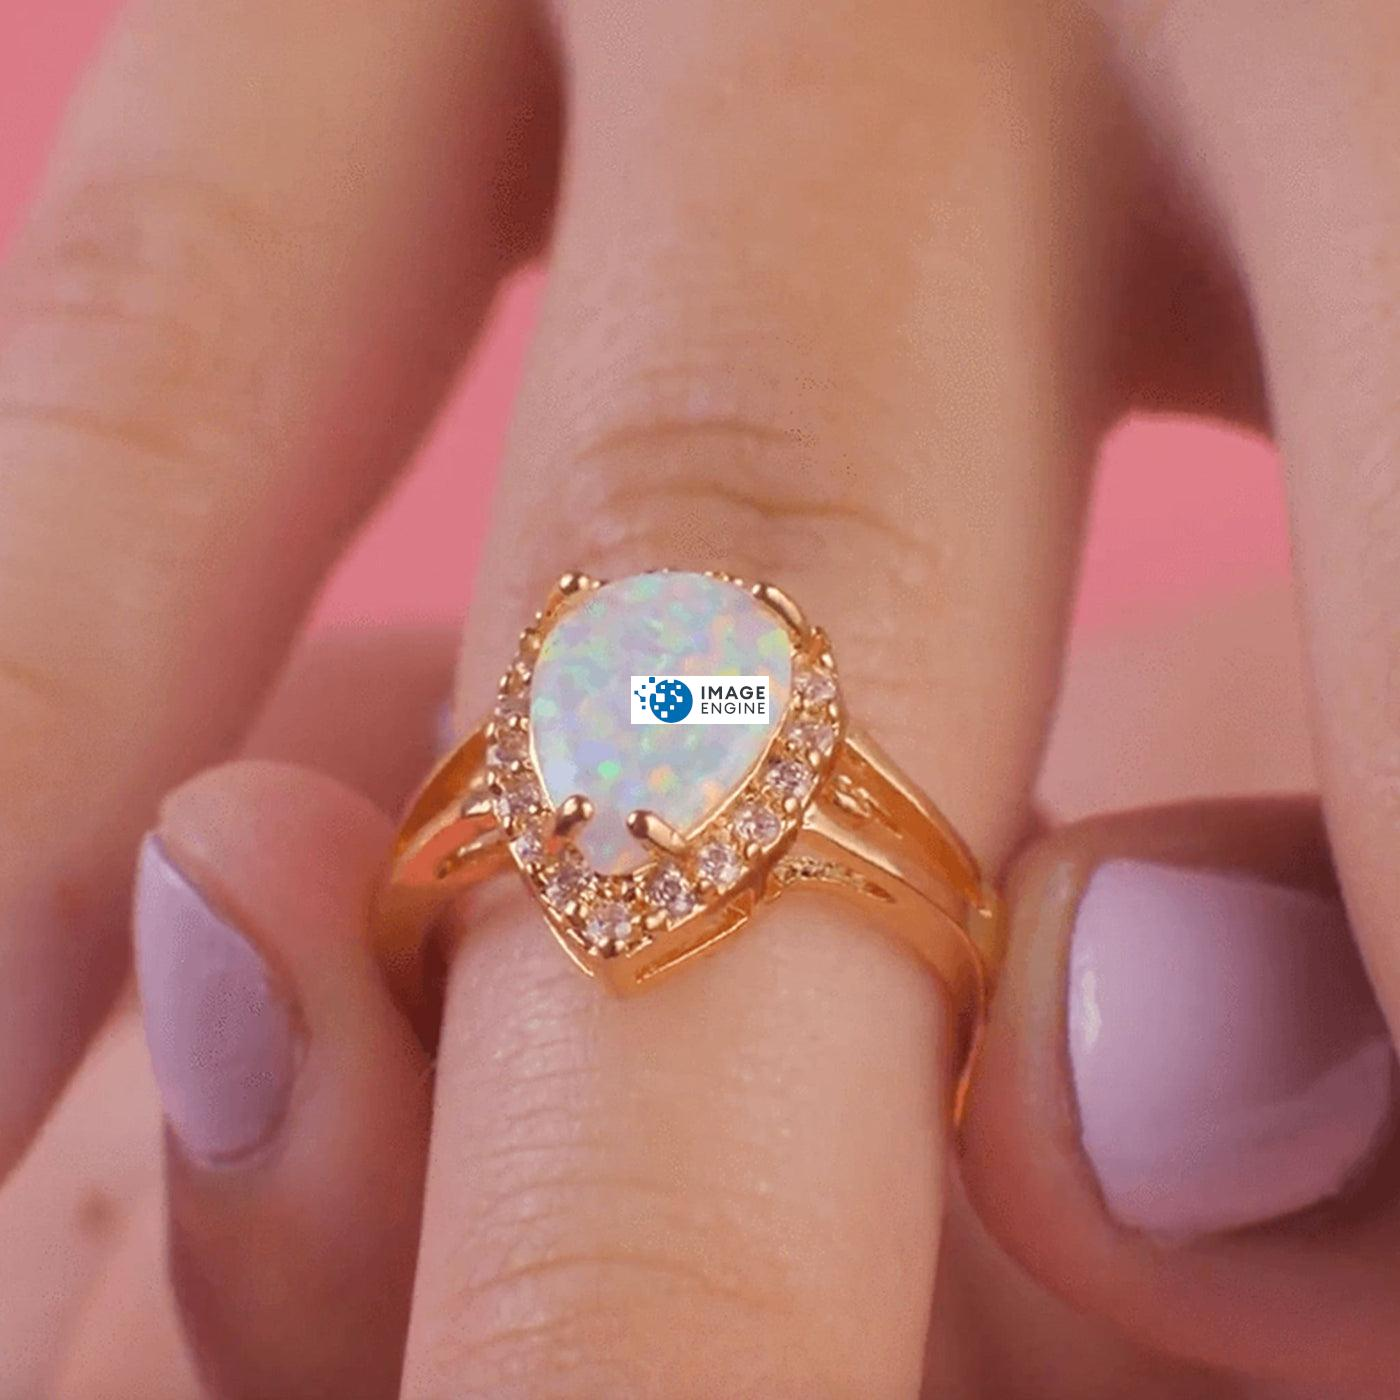 White Fire Champagne Opal Ring - On Ring Finger Zoomed In - 18K Yellow Gold Vermeil